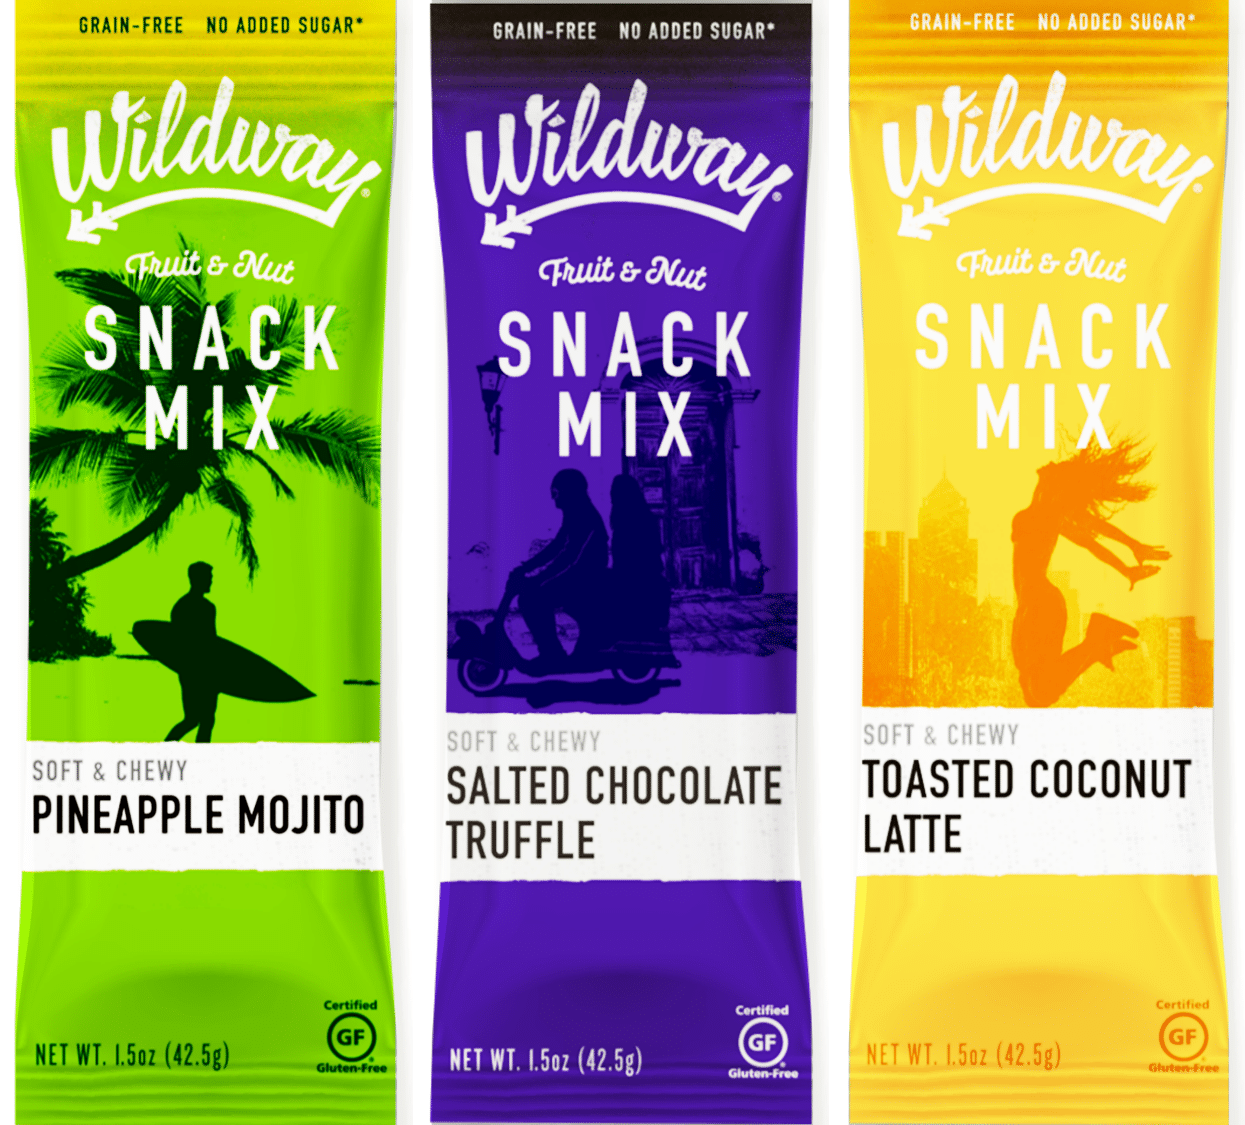 Wildway Announces New Fruit and Nut Snack Mixes